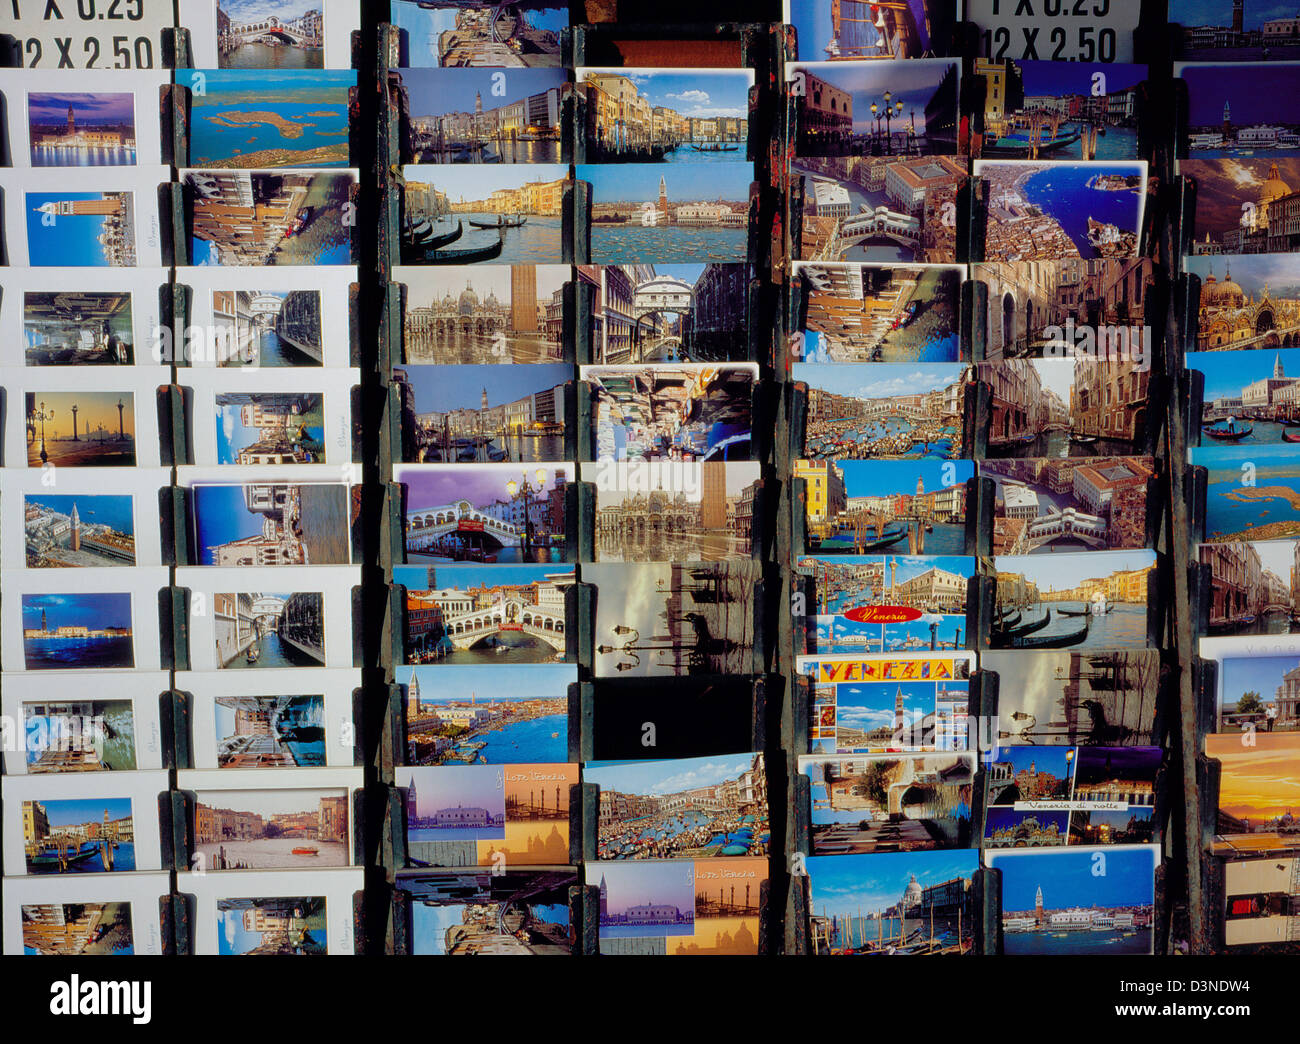 Postcards of Venice are on sale in a souvenir shop in Venice, Italy, February 2005. Photo: Willy Matheisl Stock Photo